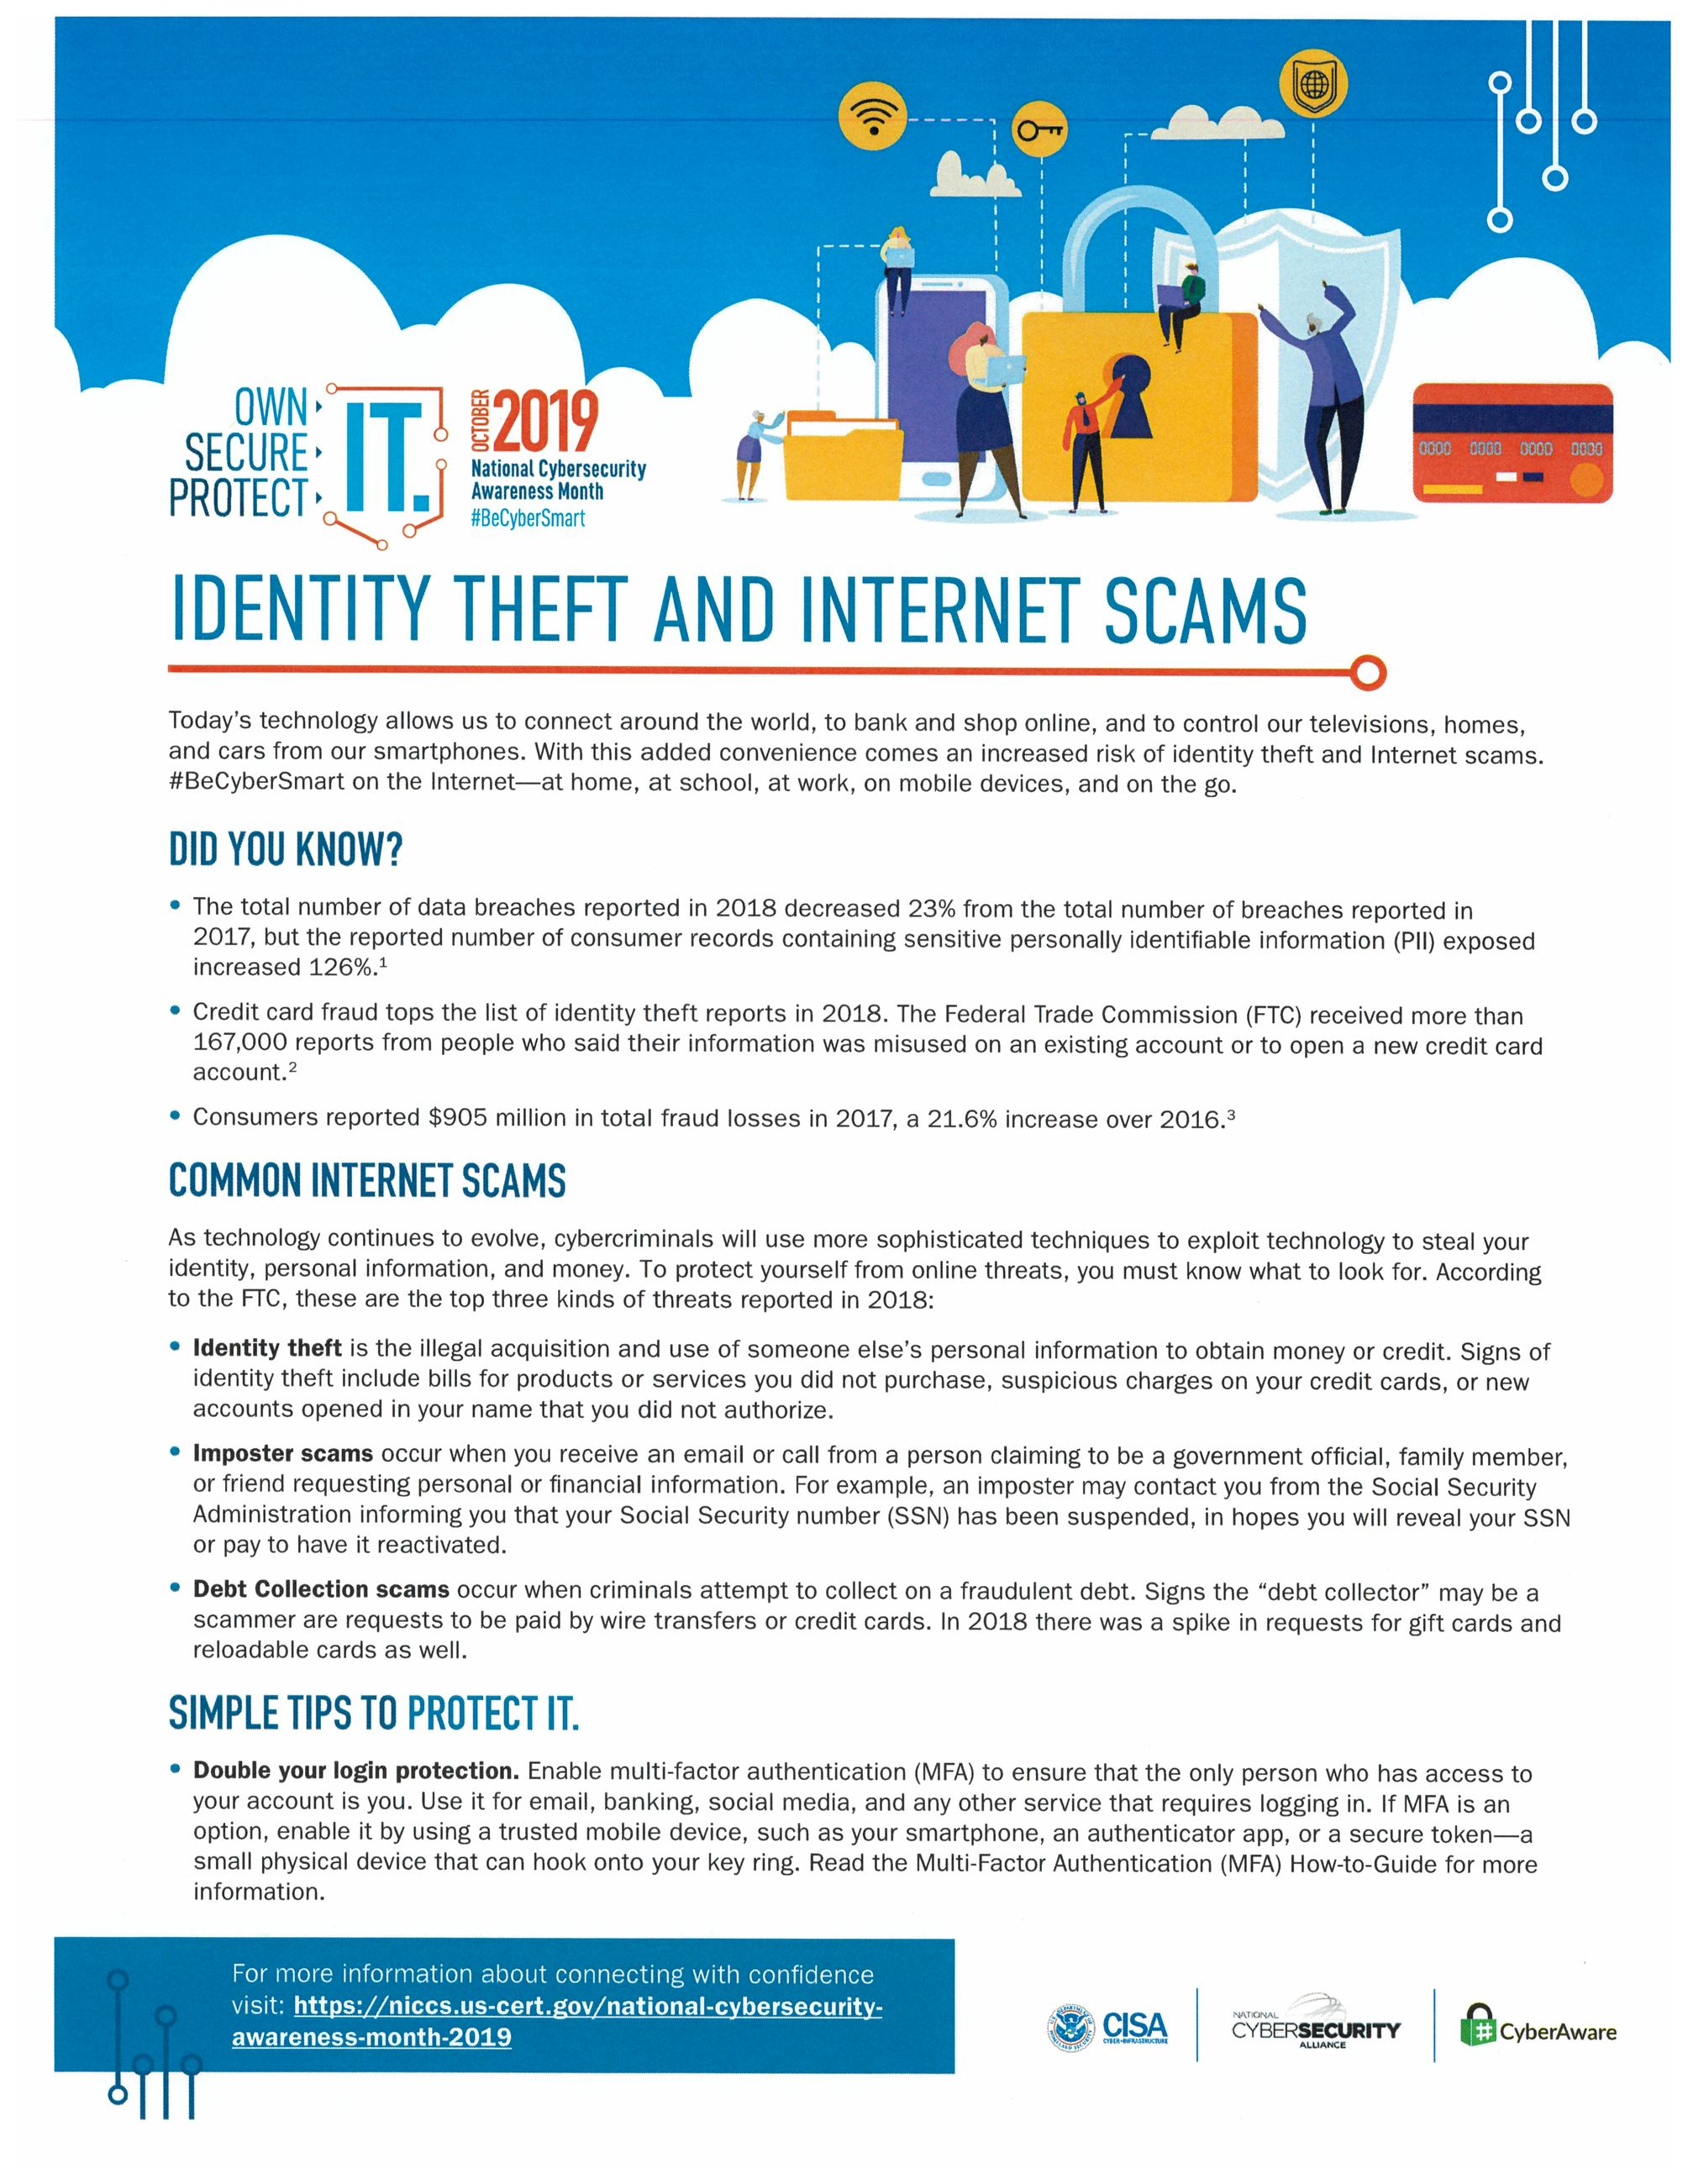 first page of identity theft training material